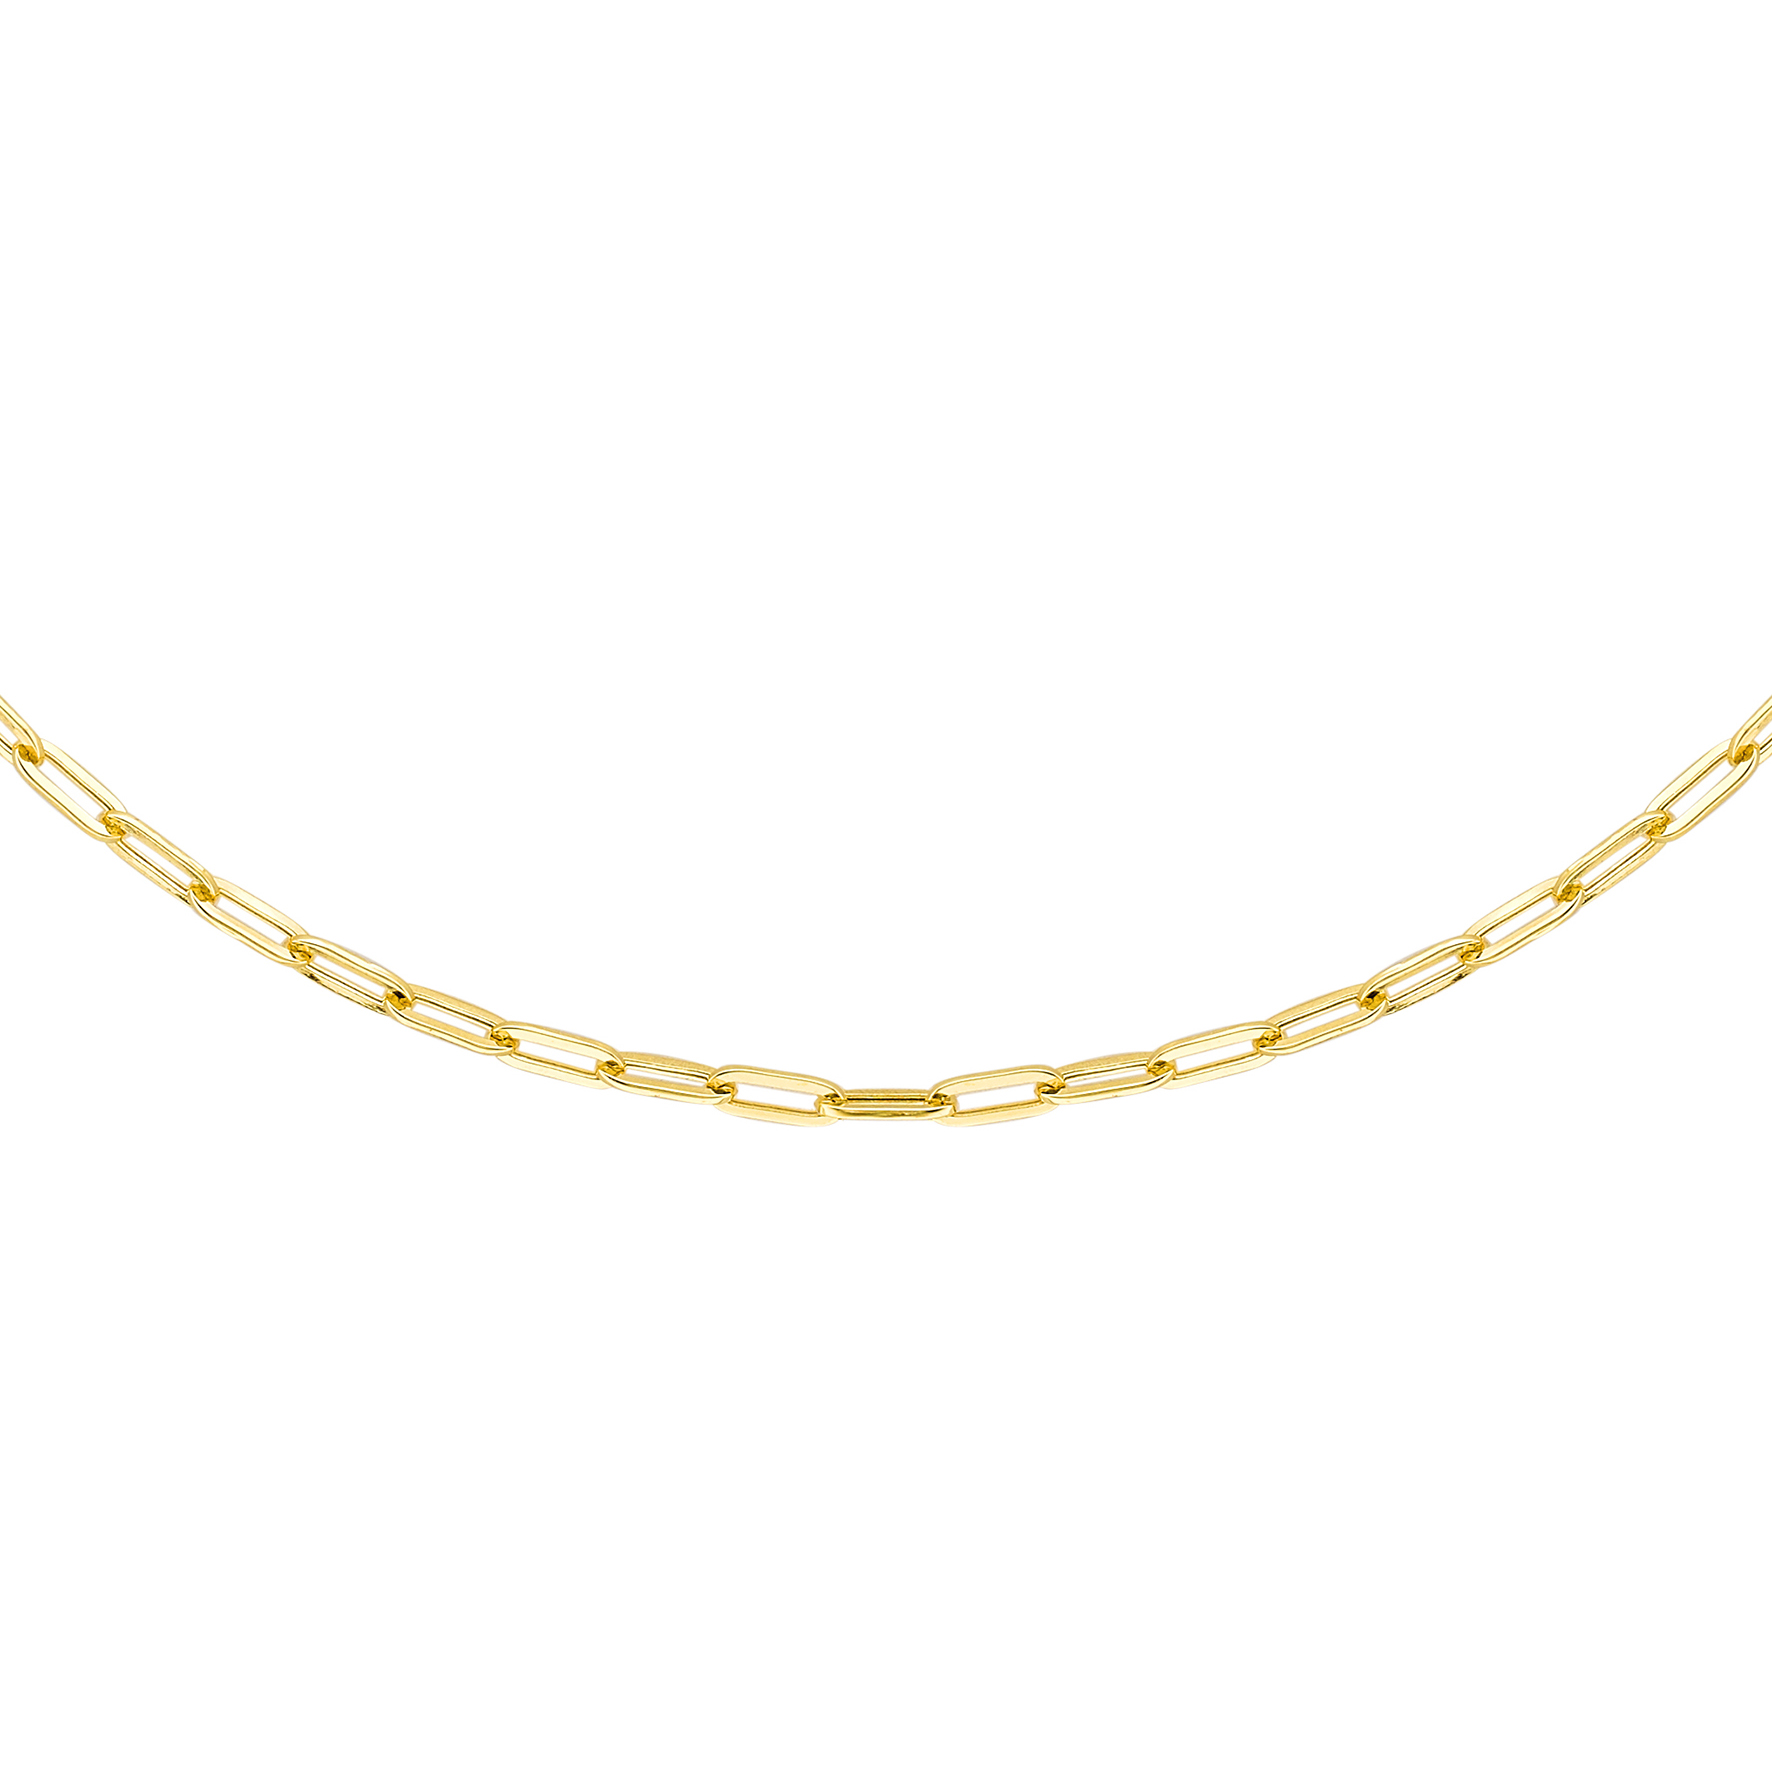 Soleil Collection Paperclip Link Necklace   9K Yellow Gold